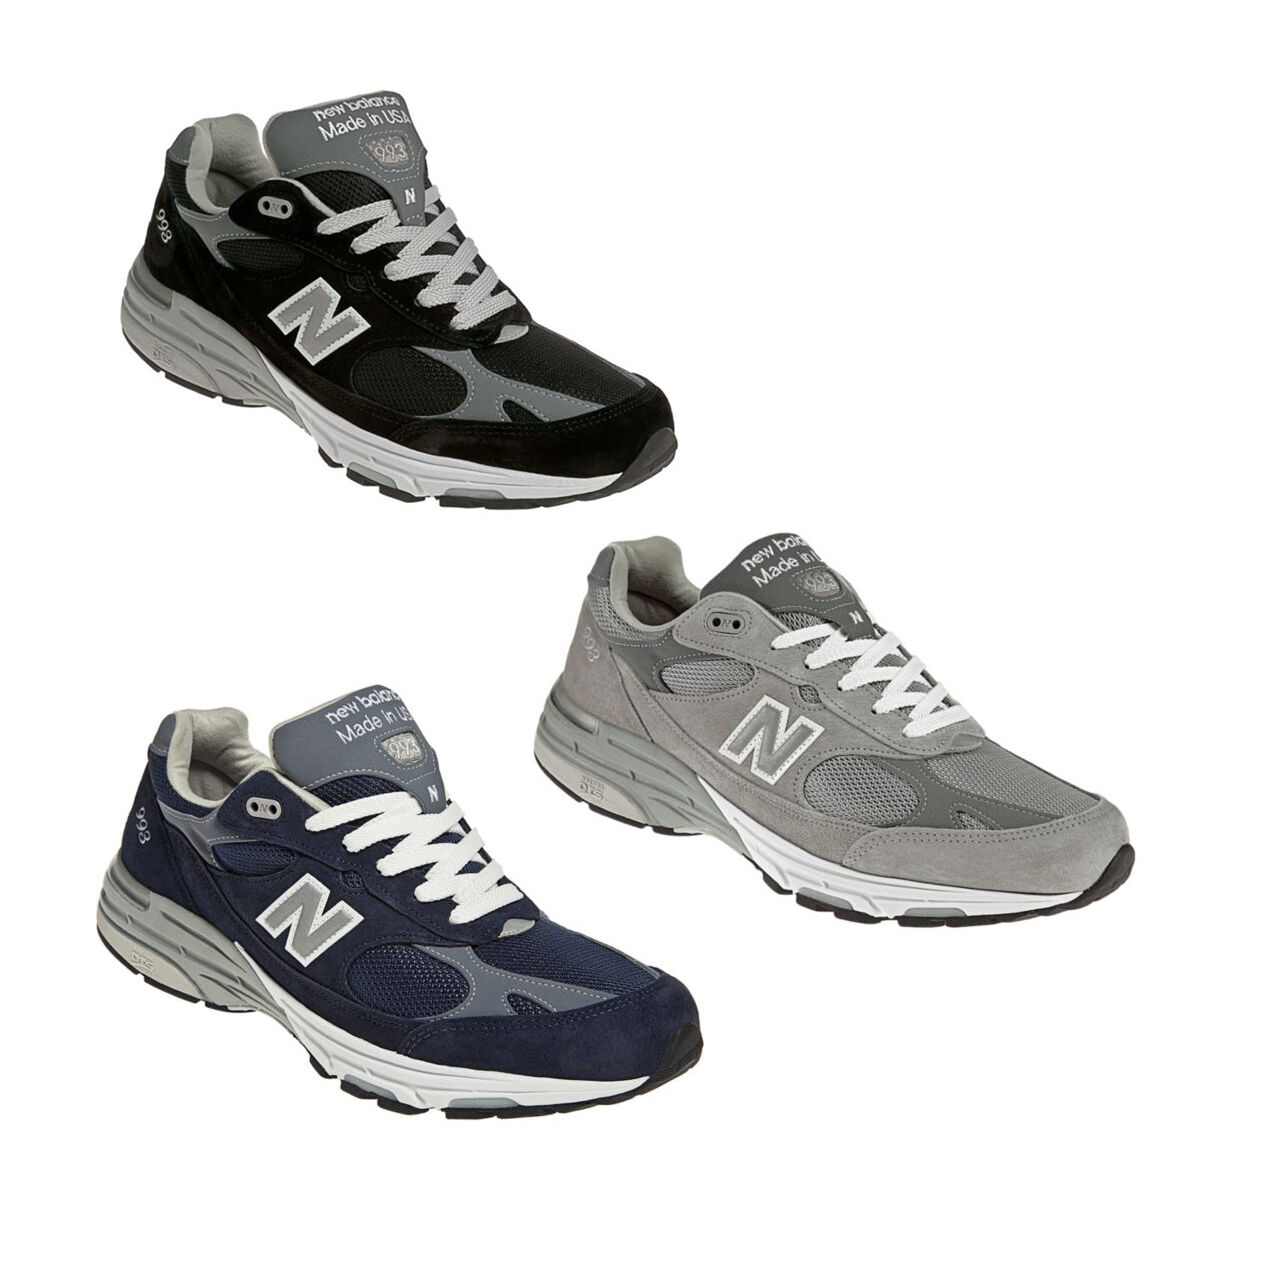 Men's New Balance MR993 Running shoes MR993BK MR993GL D 2E USA Made